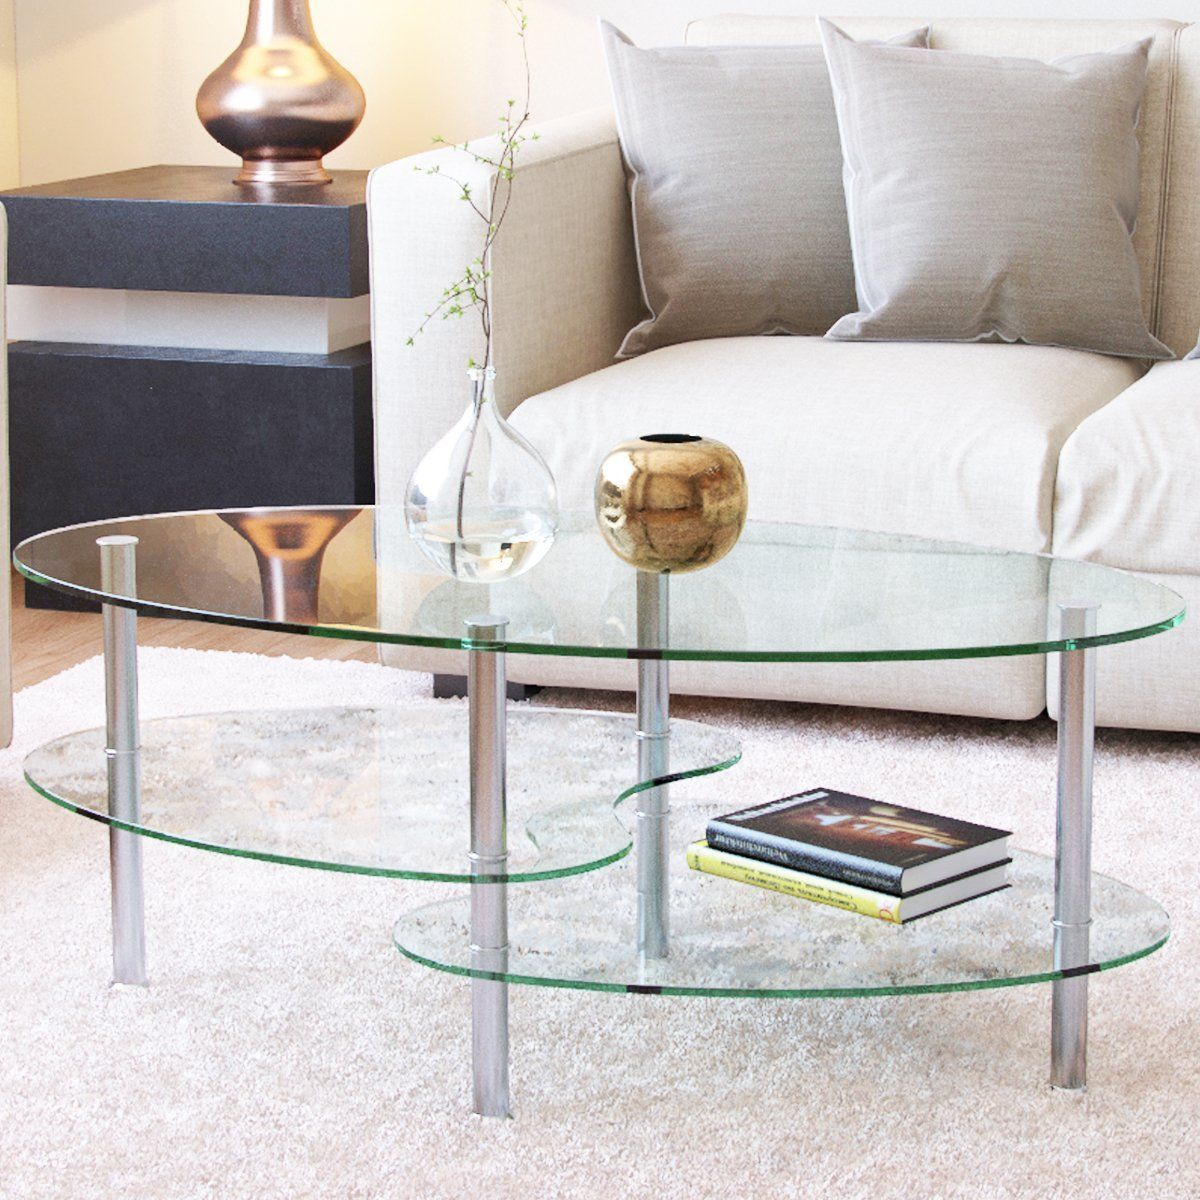 Ryan Rove Ashley 38 Inch Oval Two Tier All Clear Glass Coffee Table Living Room Coffee Table Living Room Table Living Table [ 1200 x 1200 Pixel ]